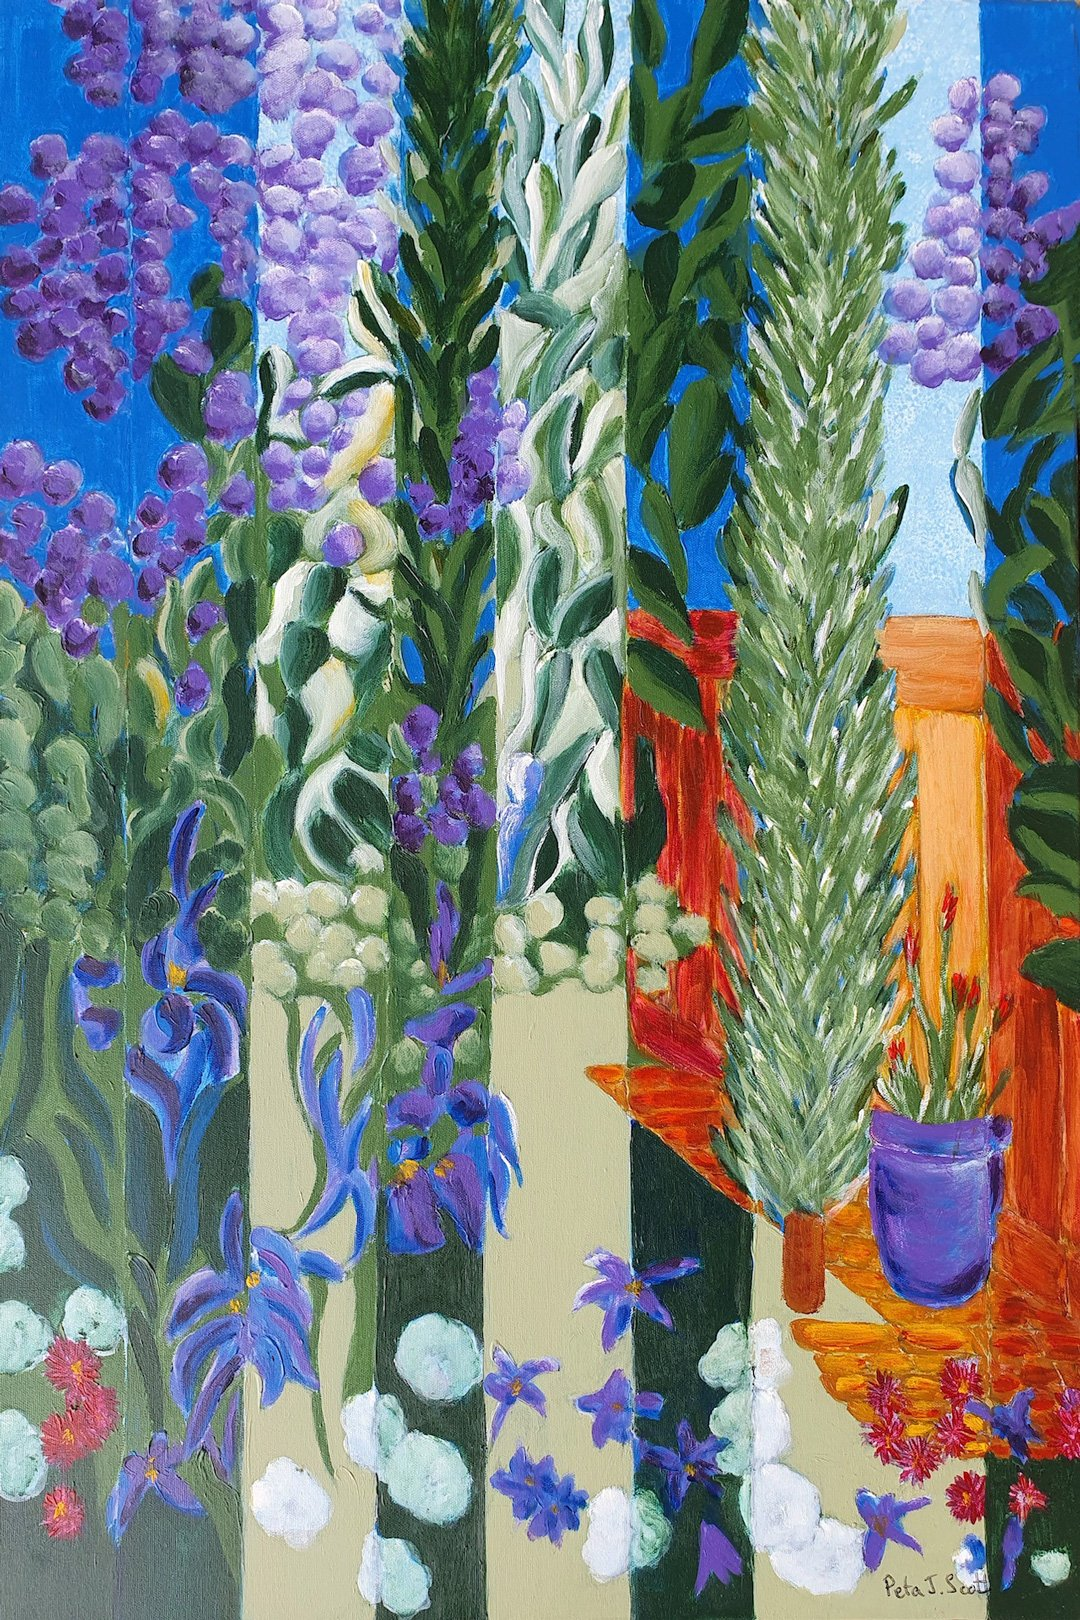 Peta Scott | 2021-Spring looking through the verticals II | AcrylicOnCanvas | 92x61cm